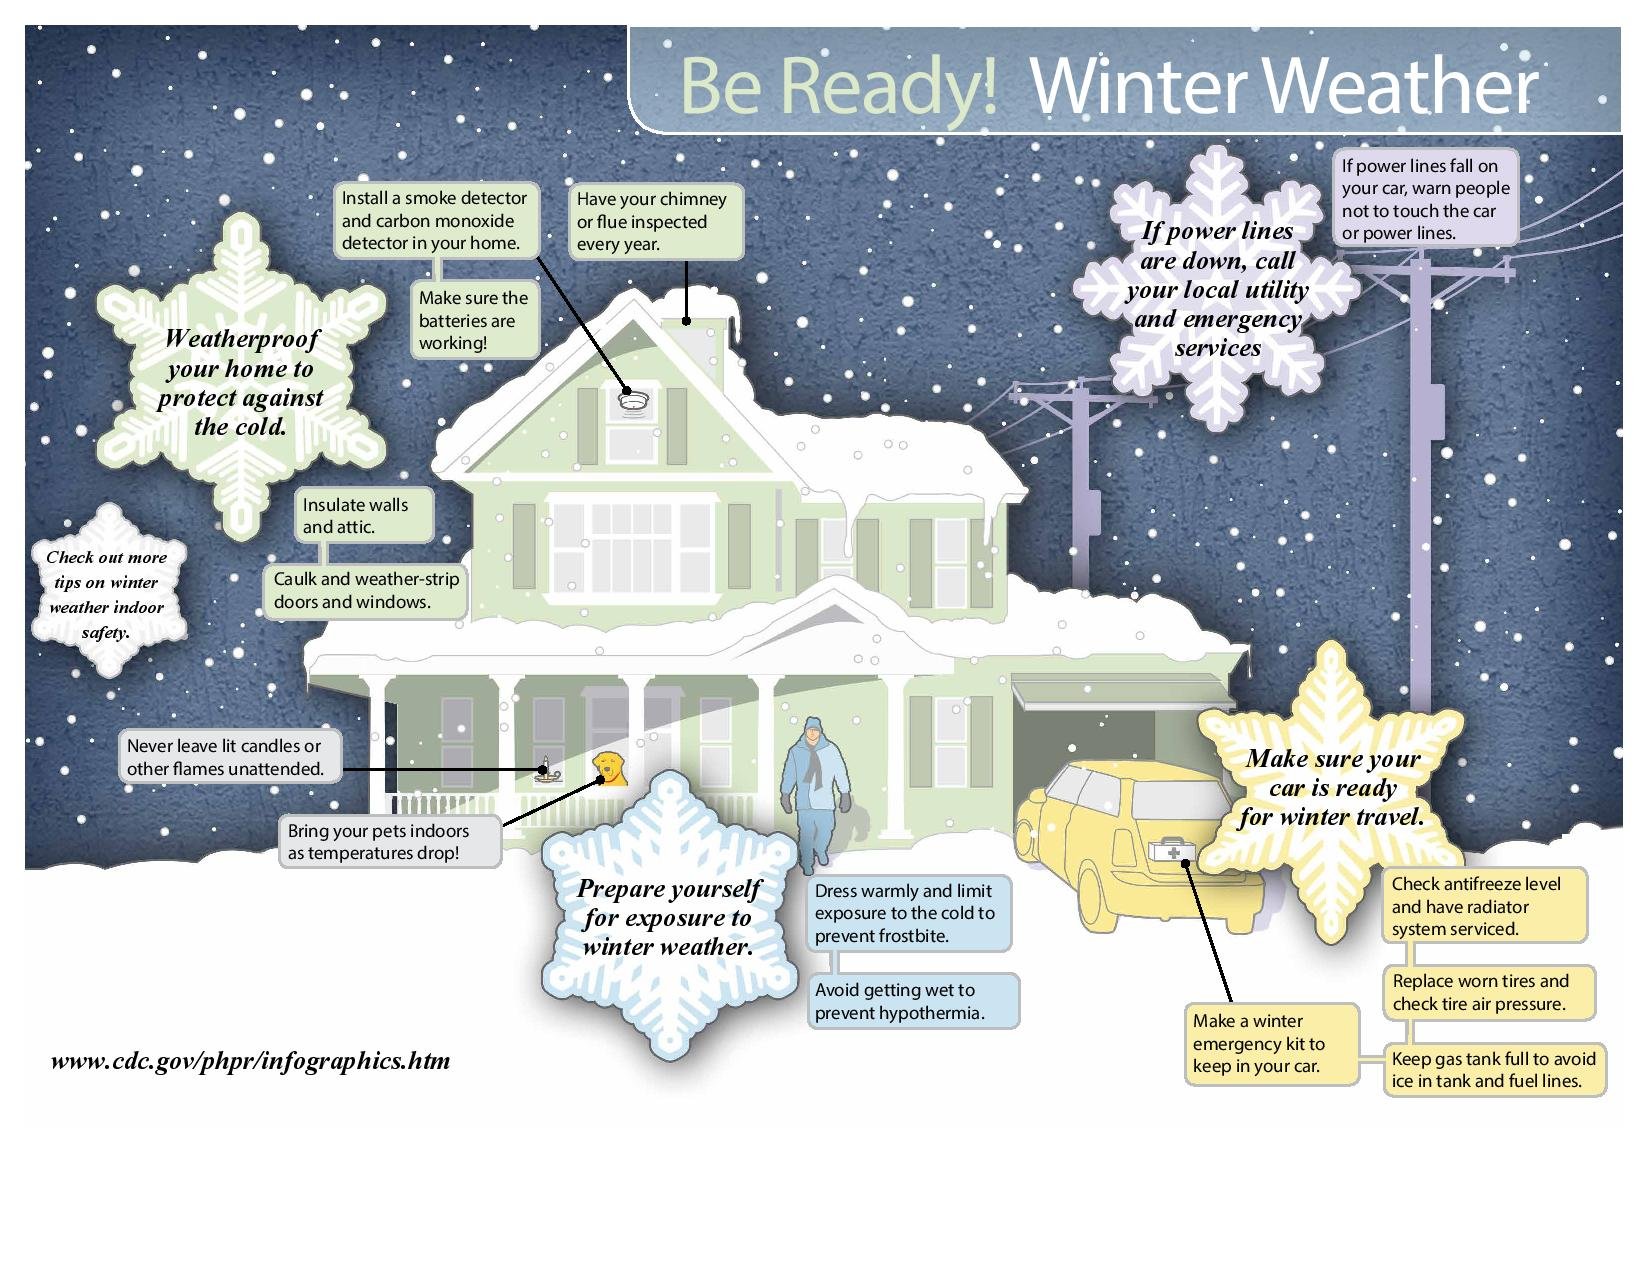 The Centers For Disease Control And Prevention Have A Great Info Graphic  That Gives Tips On Everything You Need To Do To Prepare Your Home For The  Winter ... Design Ideas